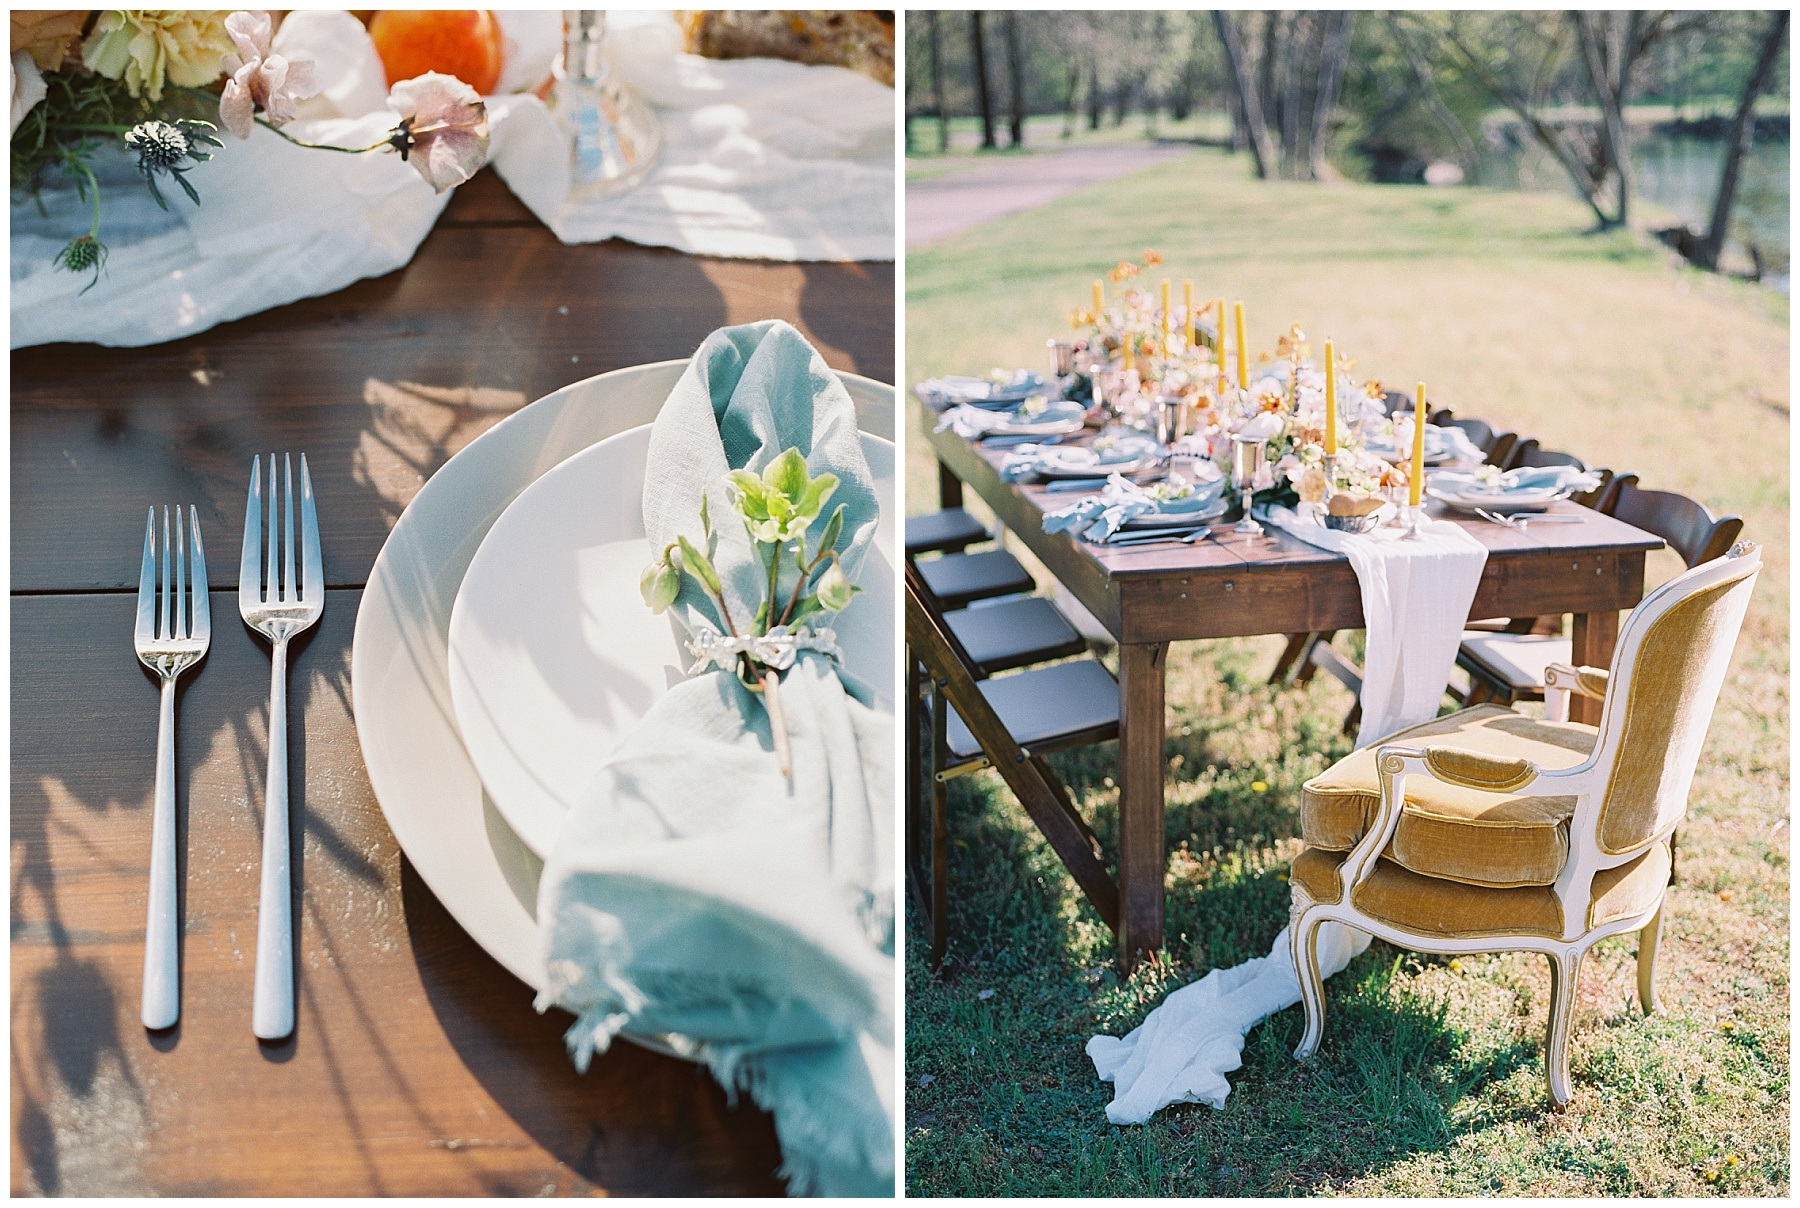 Intimate Spanish and French Inspired Destination Wedding with Lakeside Dinner Party at Dusk at Wildcliff by Kelsi Kliethermes Photography Best Missouri and Maui Wedding Photographer_0029.jpg